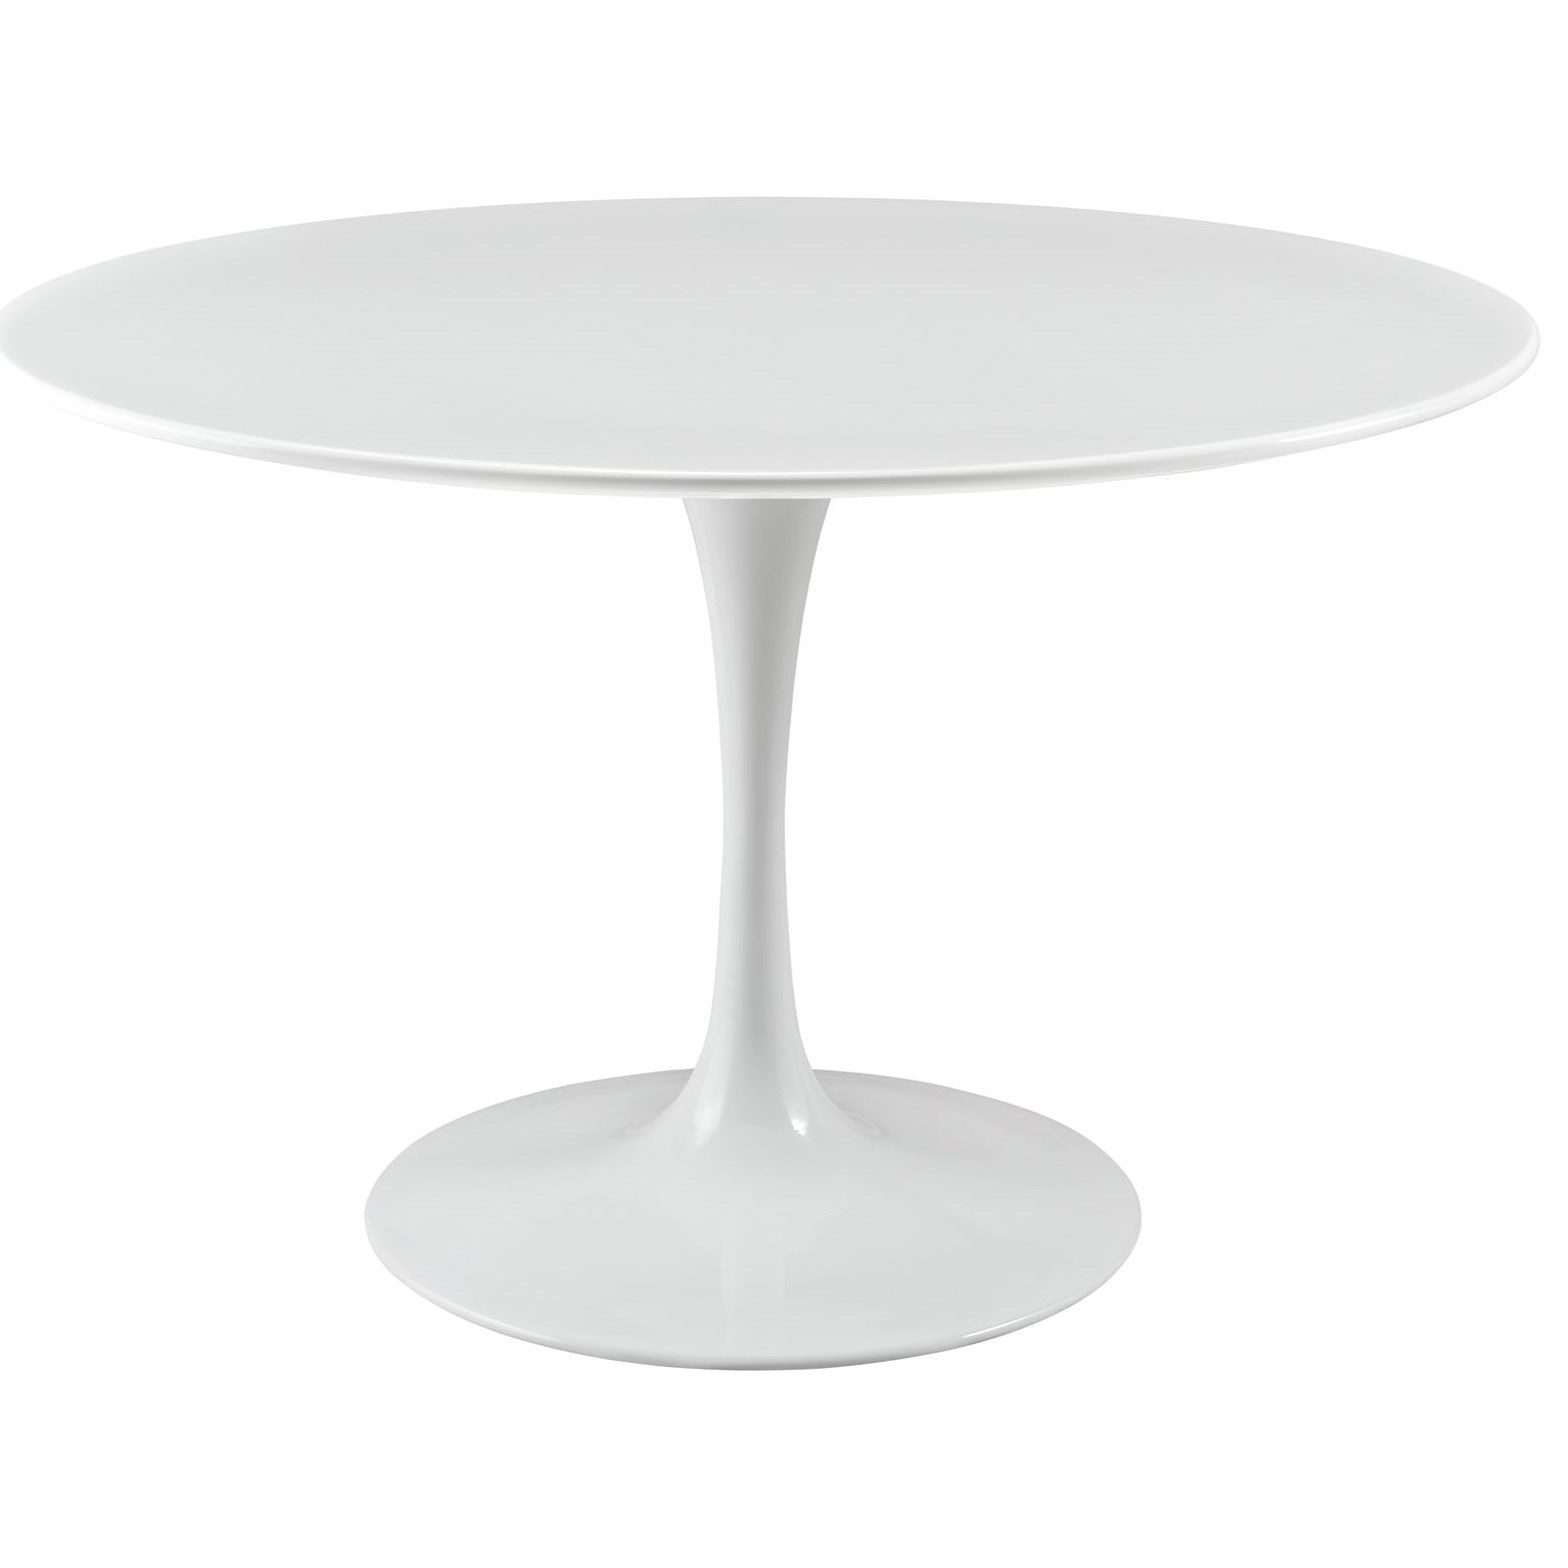 """Lippa White 47"""" Round Dining Table by Modway at Value City Furniture"""